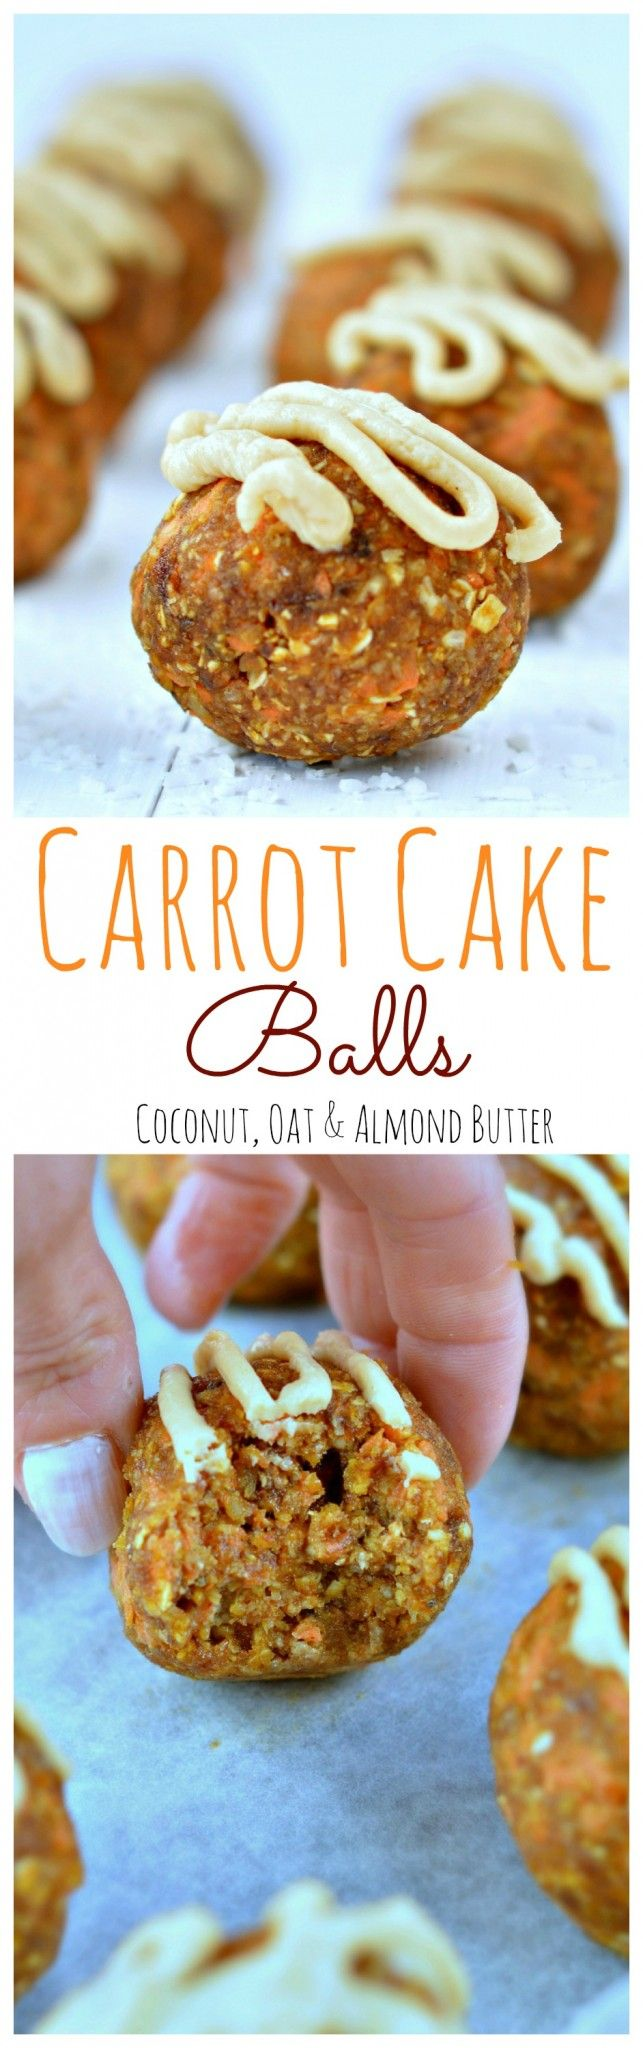 Carrot Cake Ball with Coconut, Almond, Pecan Nuts and Oat [Vegan, Sugar Free and Dairy Free]